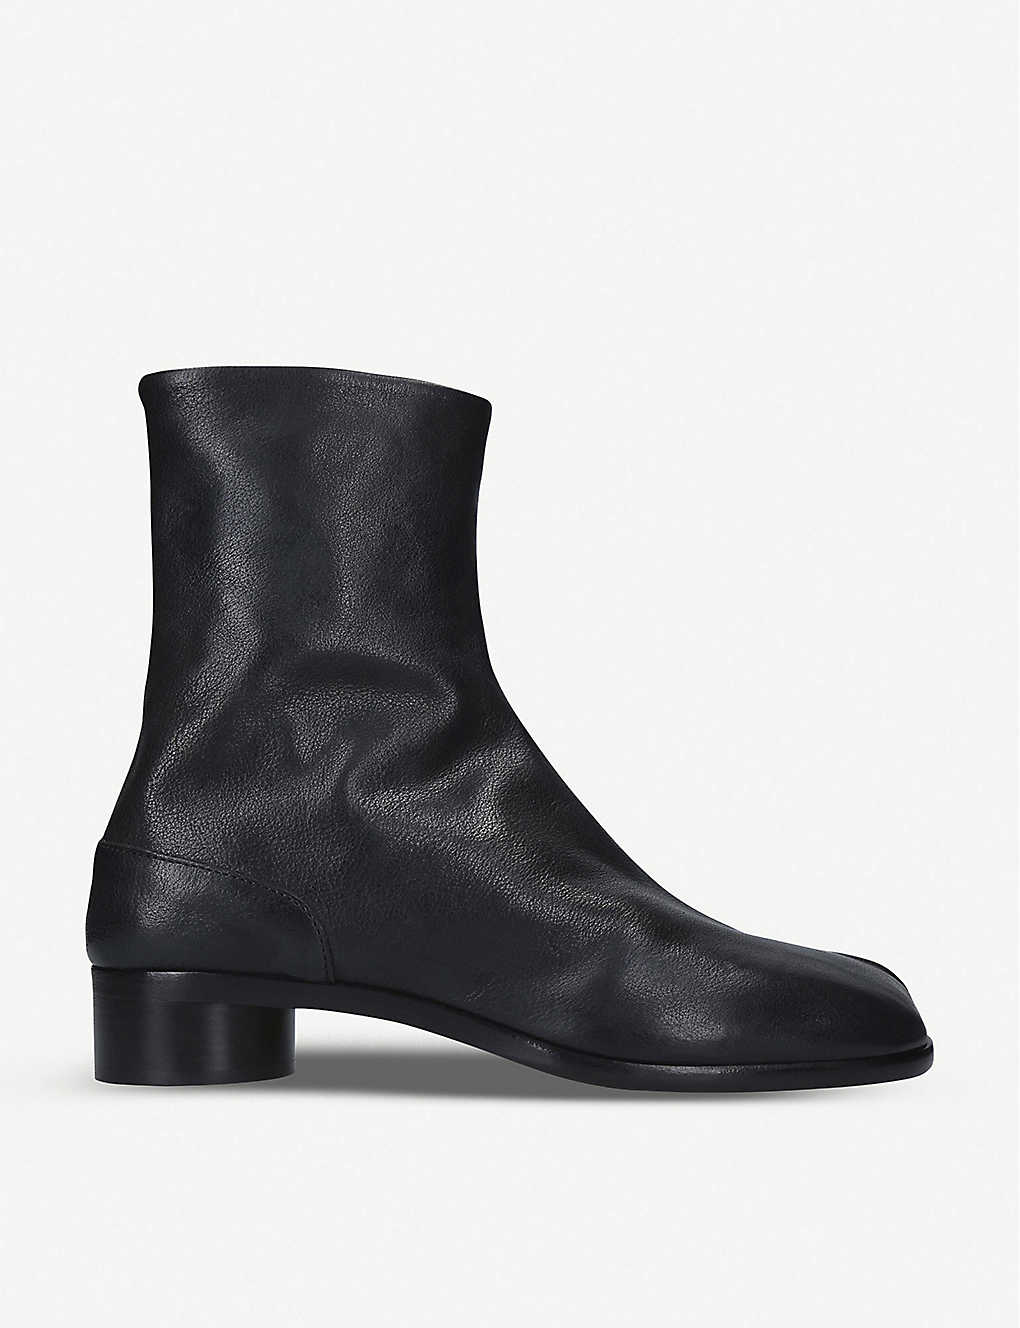 MAISON MARGIELA: Tabi leather ankle boots